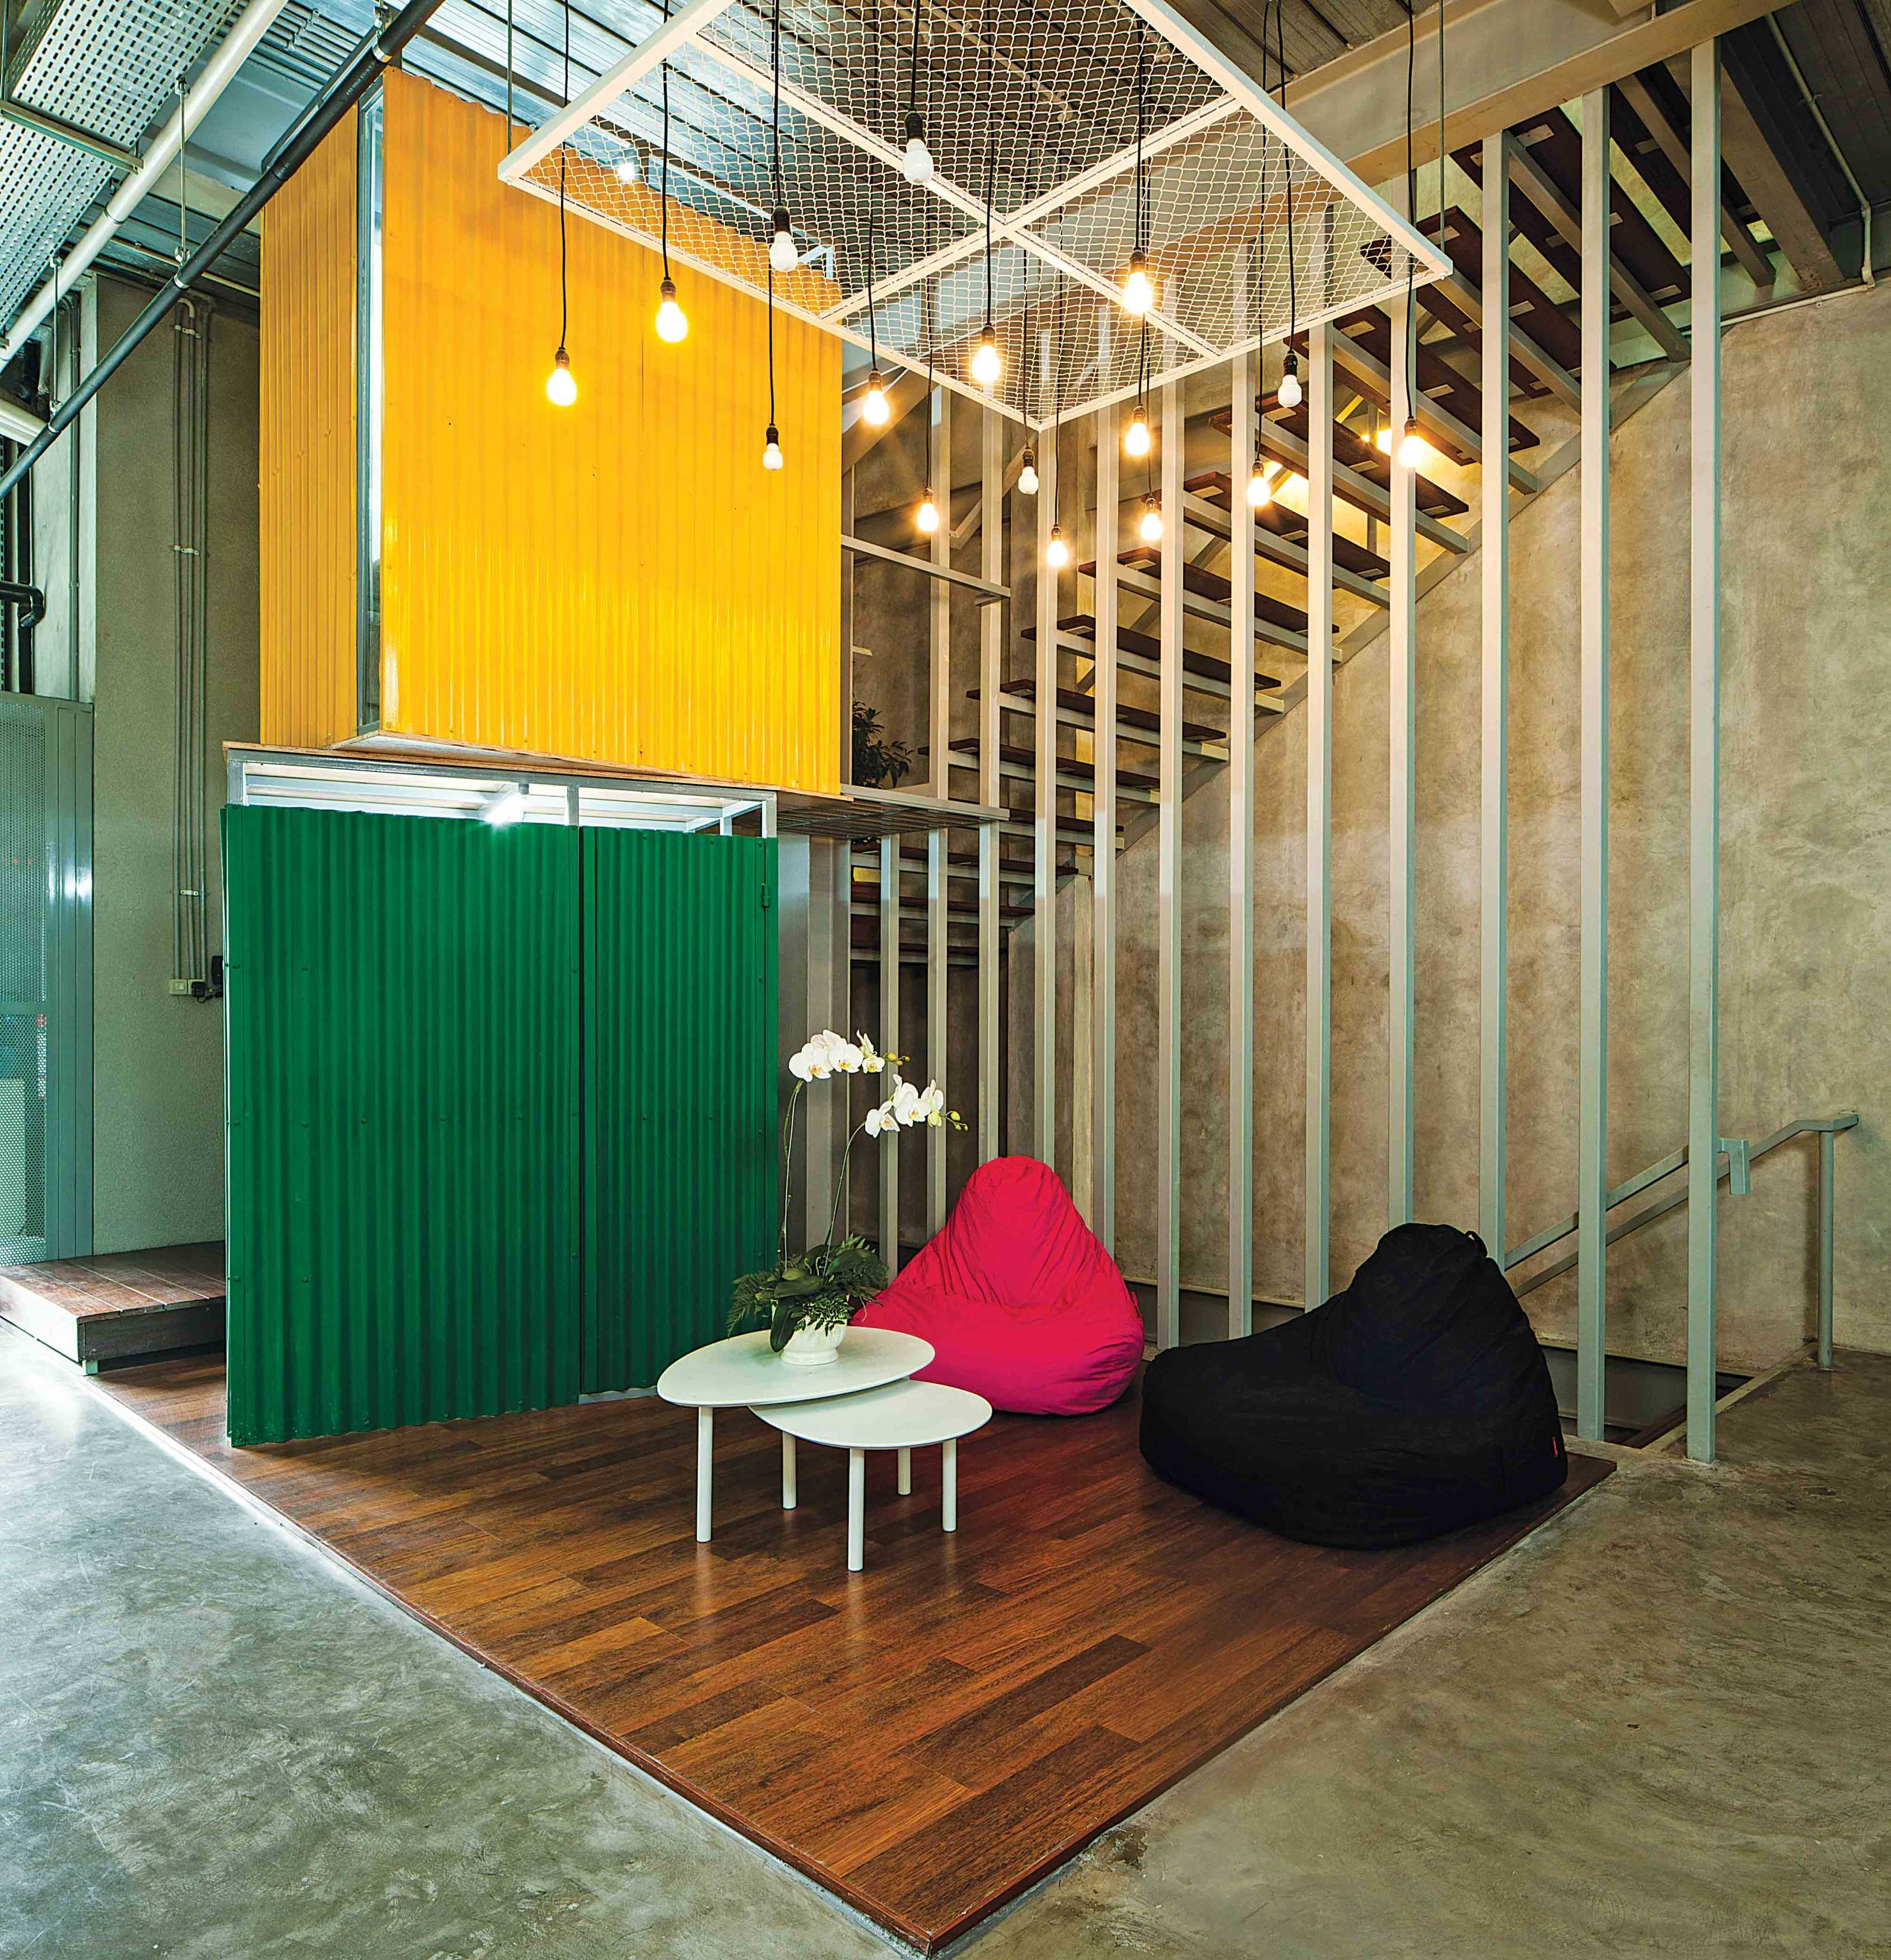 Jerry M. Febrino Maverick Office Kby. Baru, Kota Jakarta Selatan, Daerah Khusus Ibukota Jakarta, Indonesia Jakarta, Indonesia Sitting Area Industrial <P>Informal Lounge For Employees To Collaborate</p> 9531